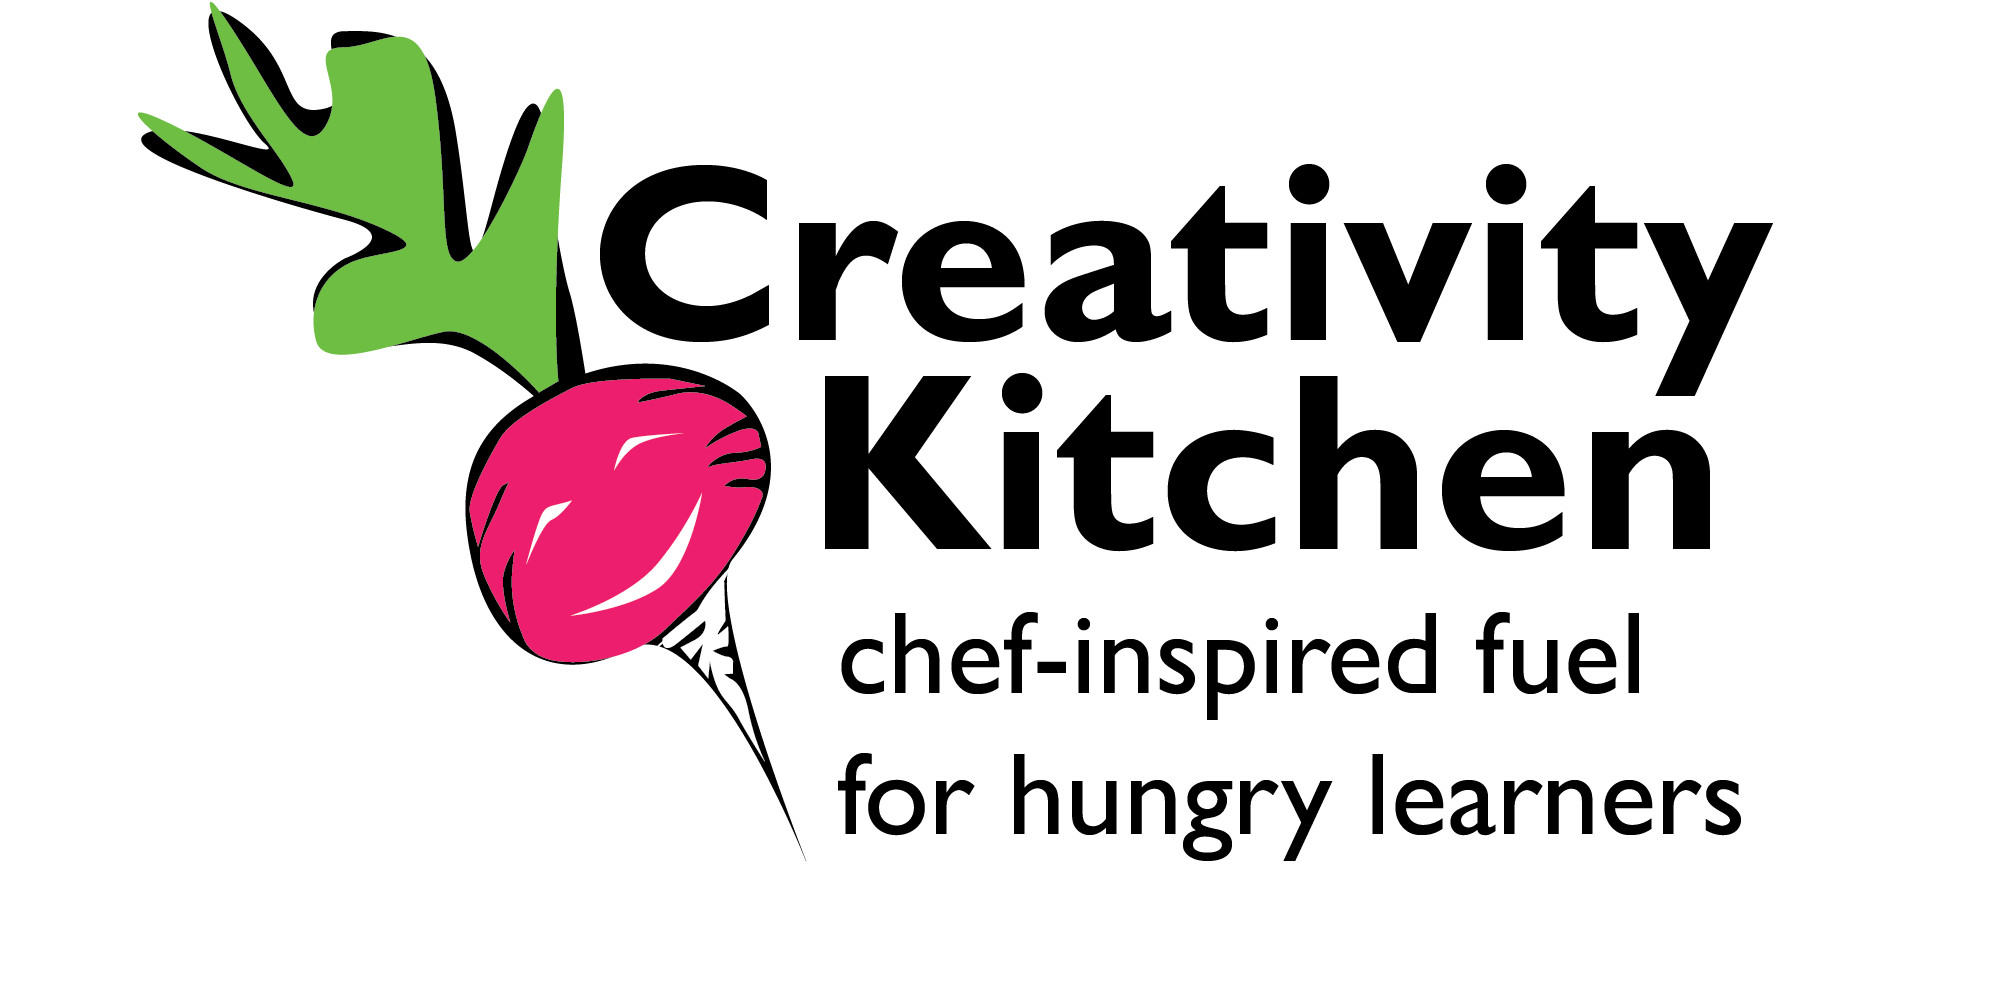 Creativity Kitchen - creating healthy, delicious meals with a bit of a Mississippi flavor.